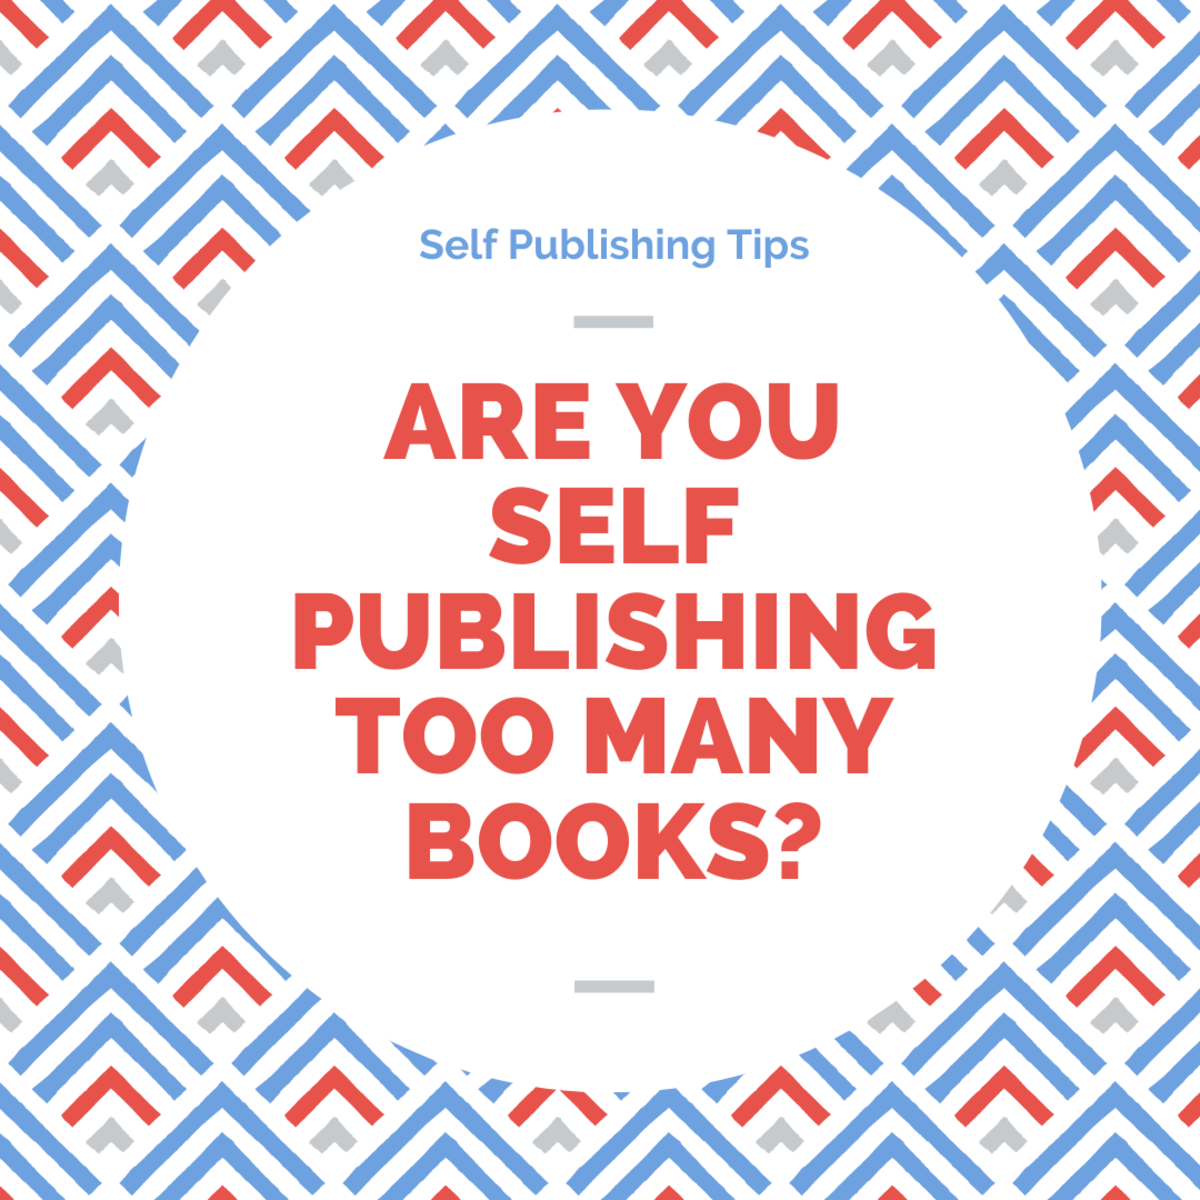 Are You Self Publishing Too Many Books?